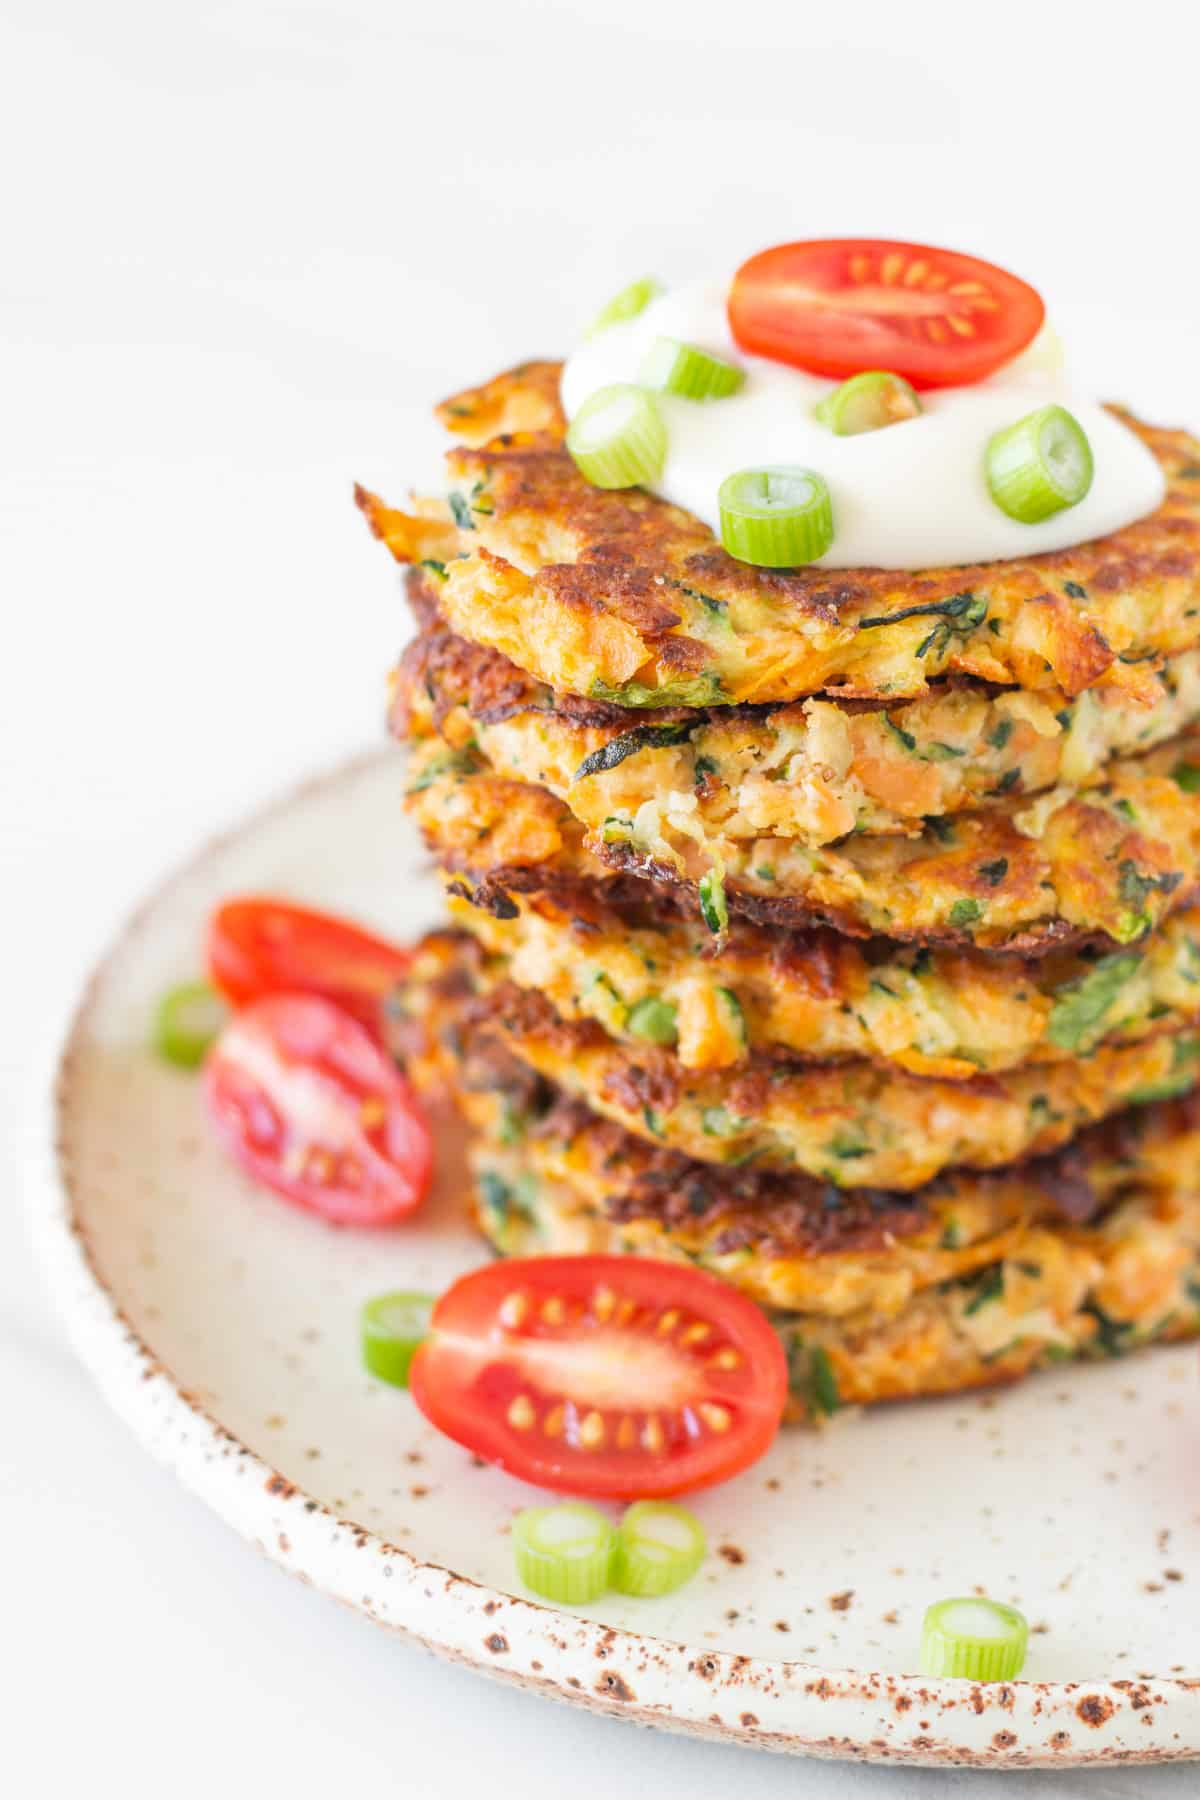 stack healthy zucchini and sweet potato fritters on a plate with aioli, cherry tomatoes and lemon wedges.